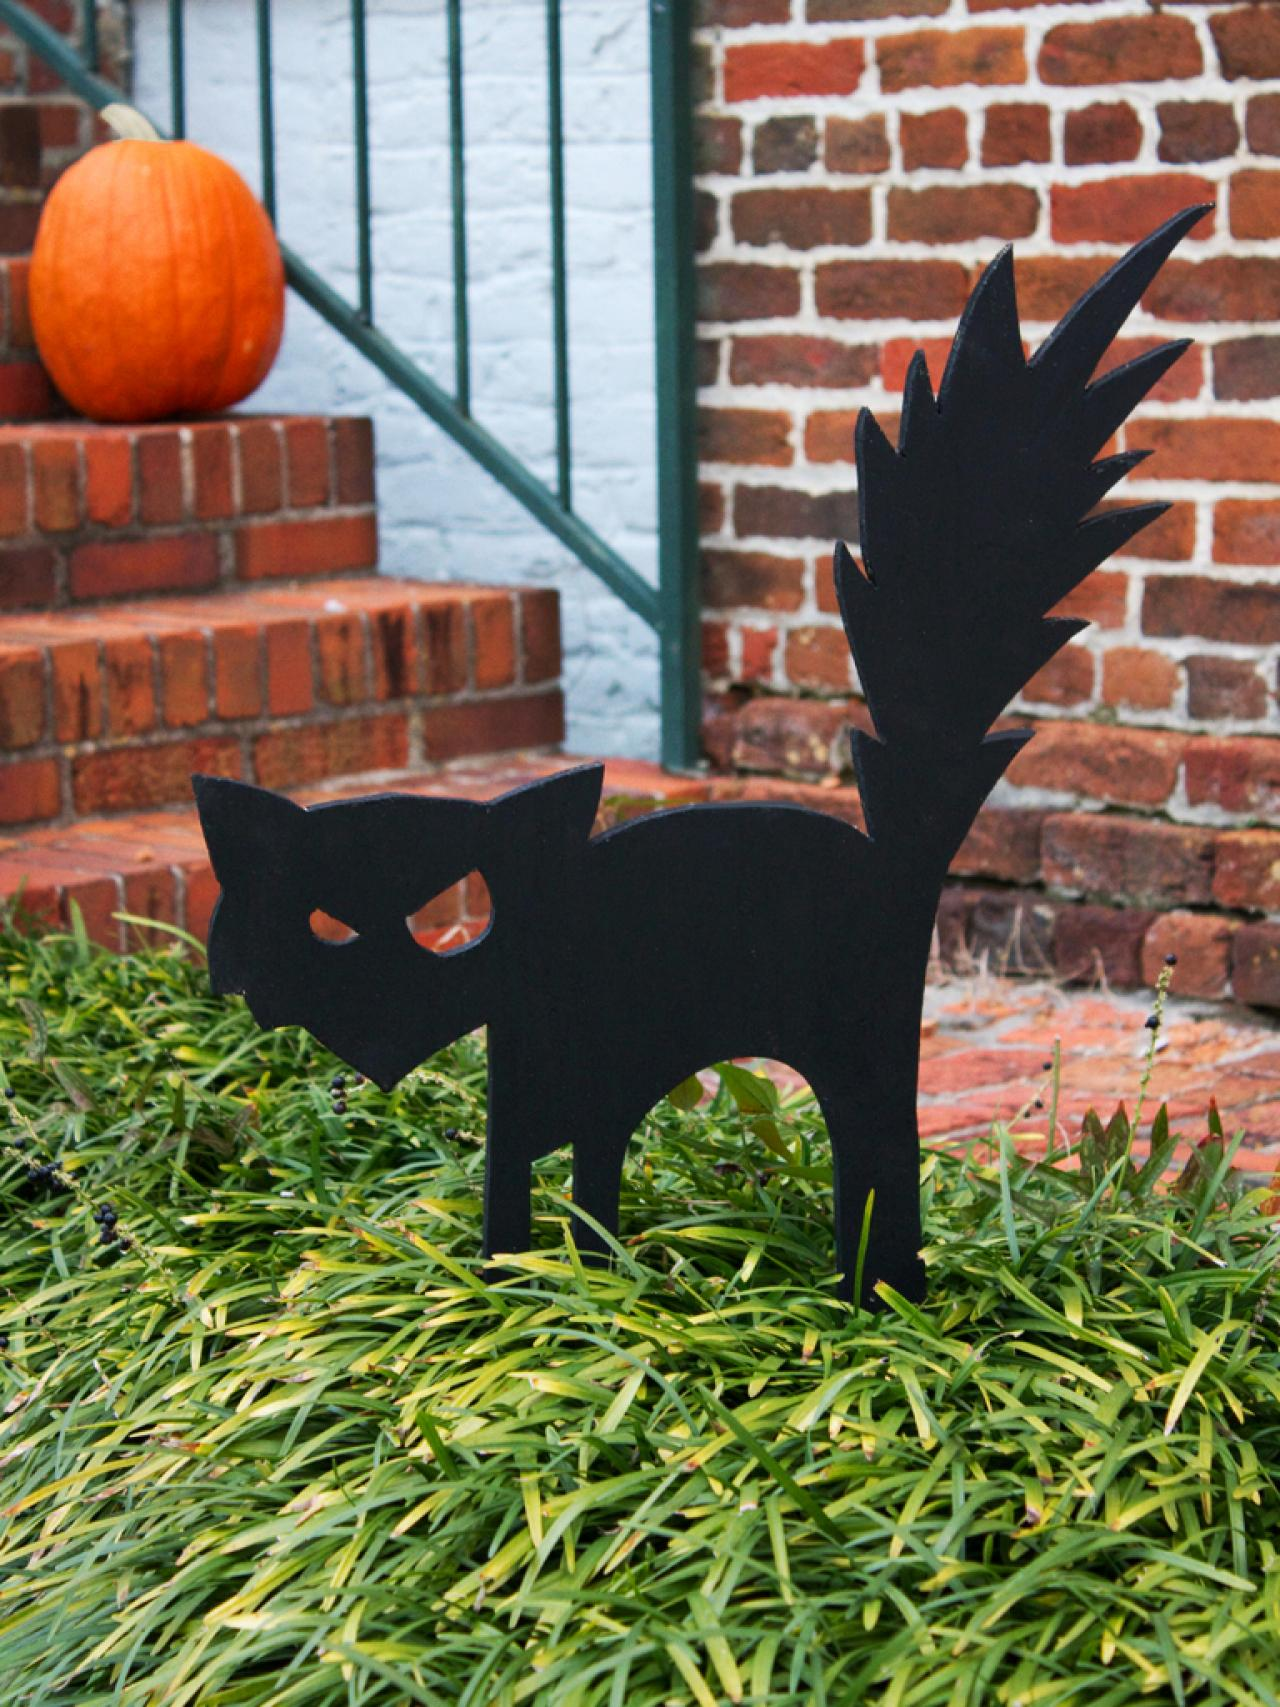 Homemade garden decor - Black Cat Outdoor Halloween Decoration